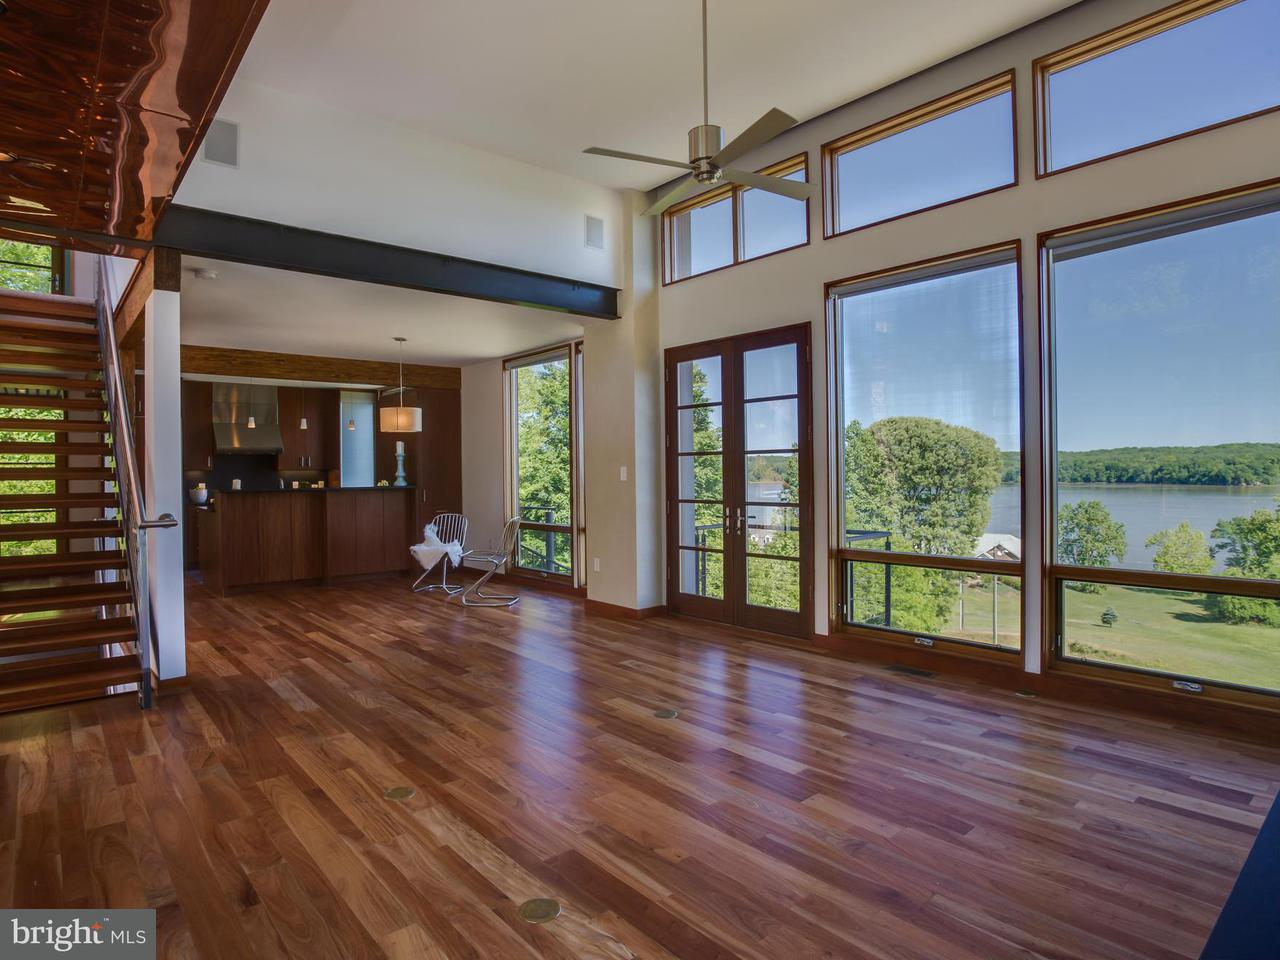 Additional photo for property listing at 5701 Cove Harbour Drive 5701 Cove Harbour Drive King George, Βιρτζινια 22485 Ηνωμενεσ Πολιτειεσ